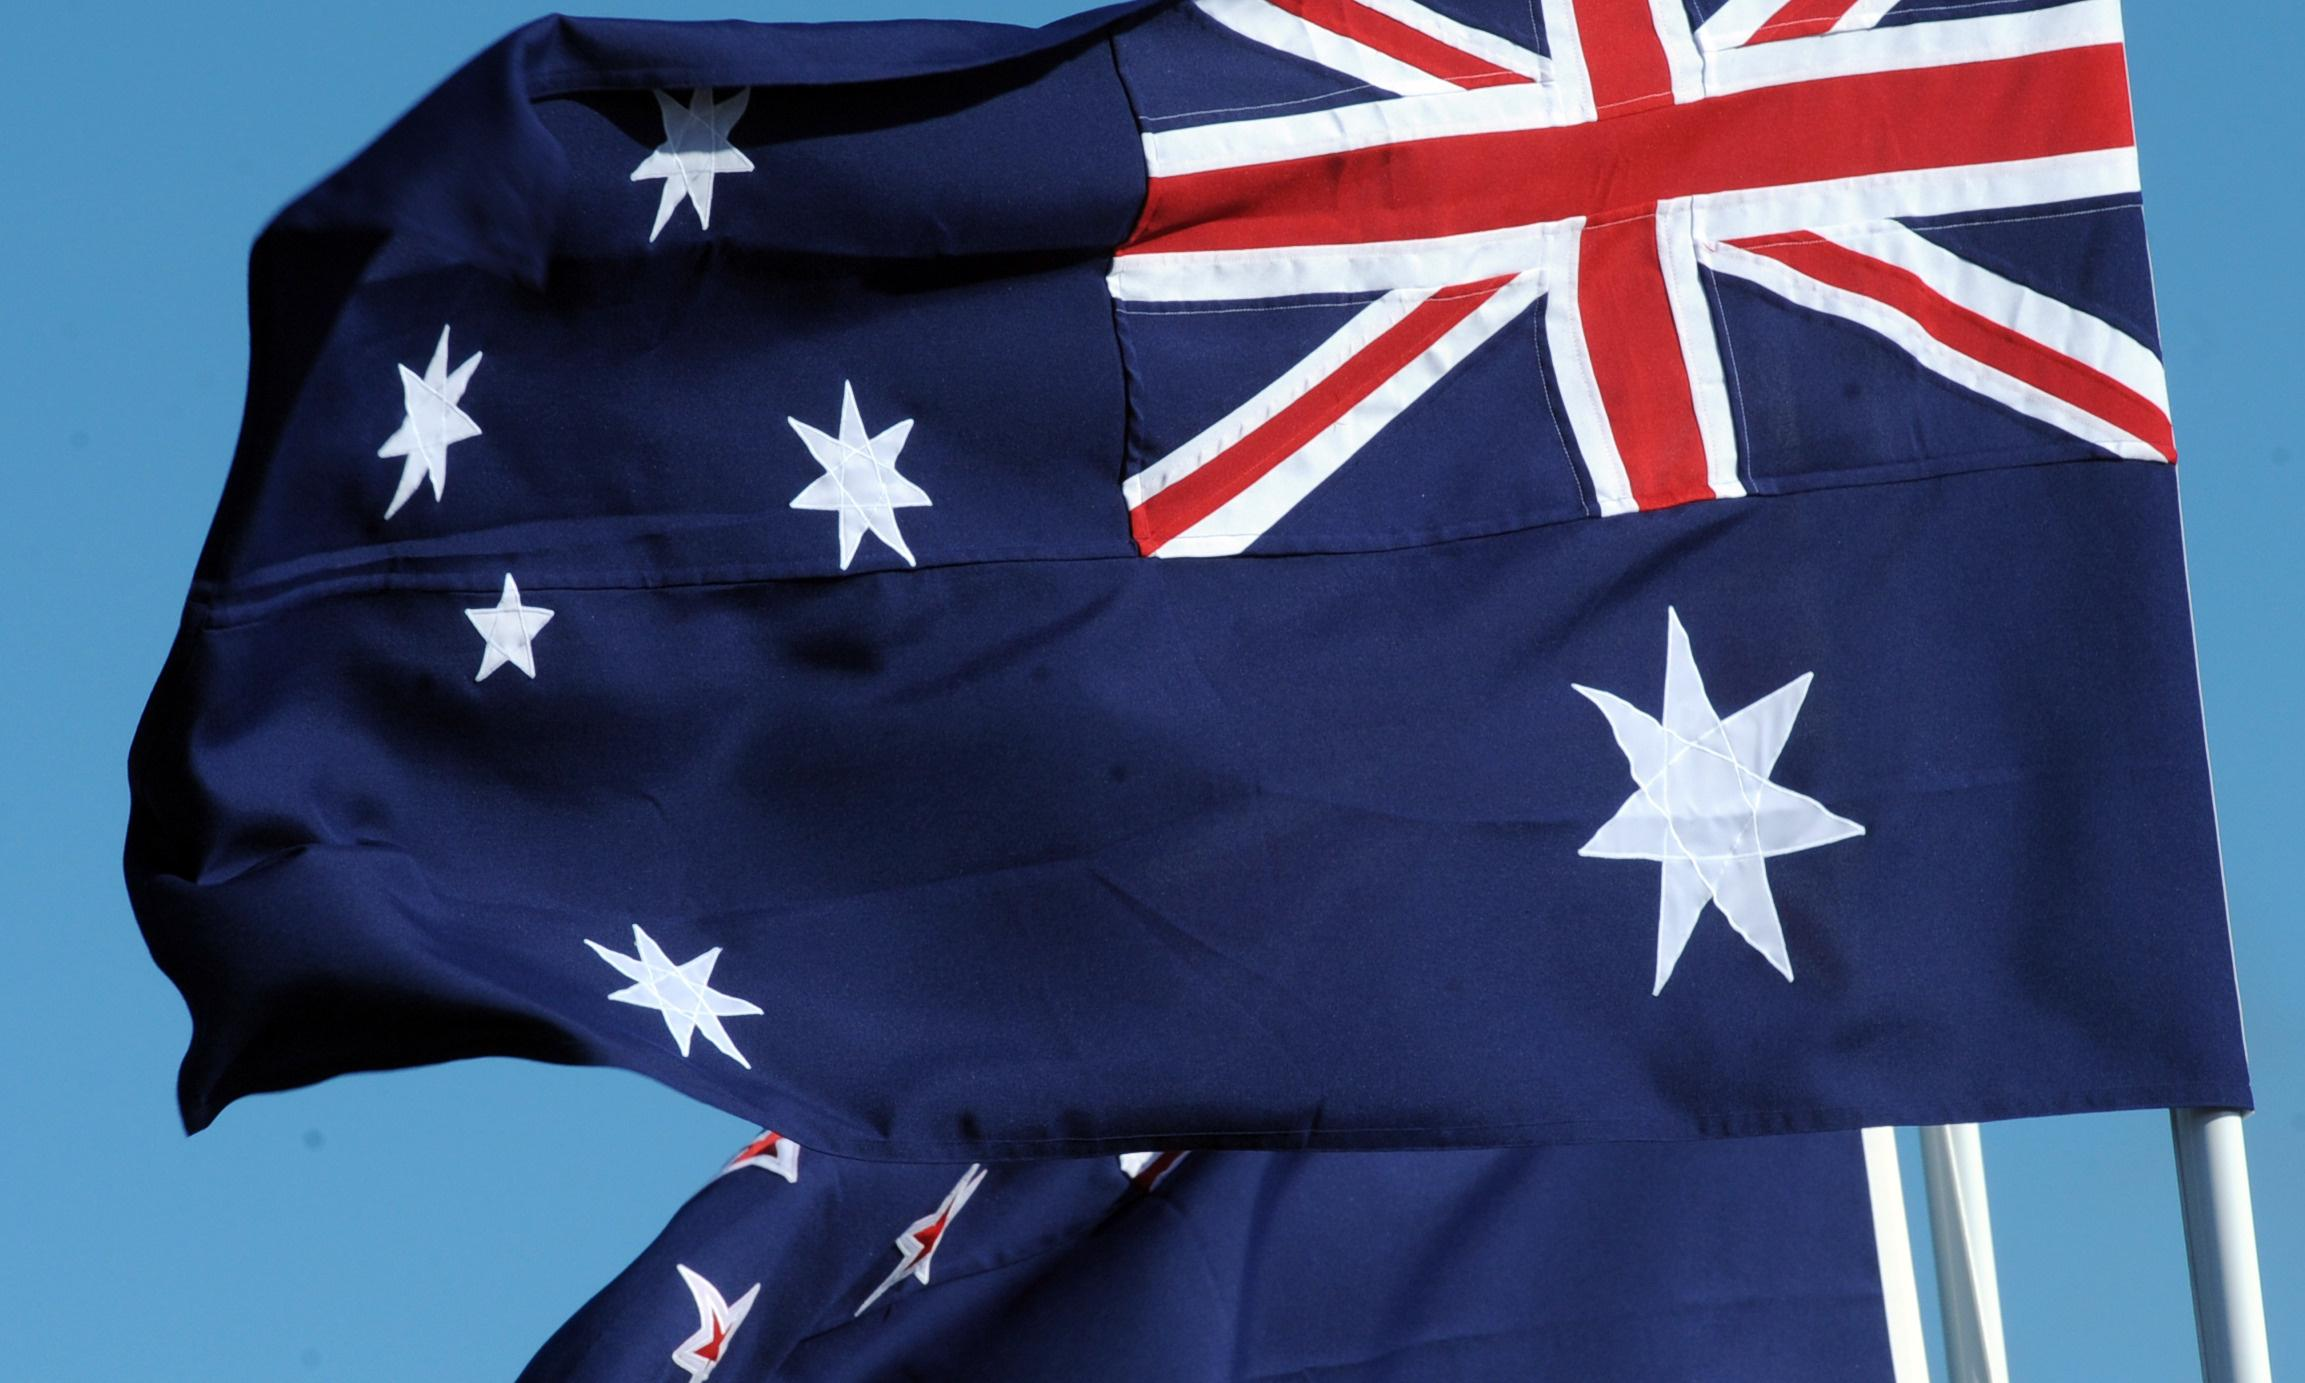 New Zealand lobby group plans to sue Australia over citizenship law change